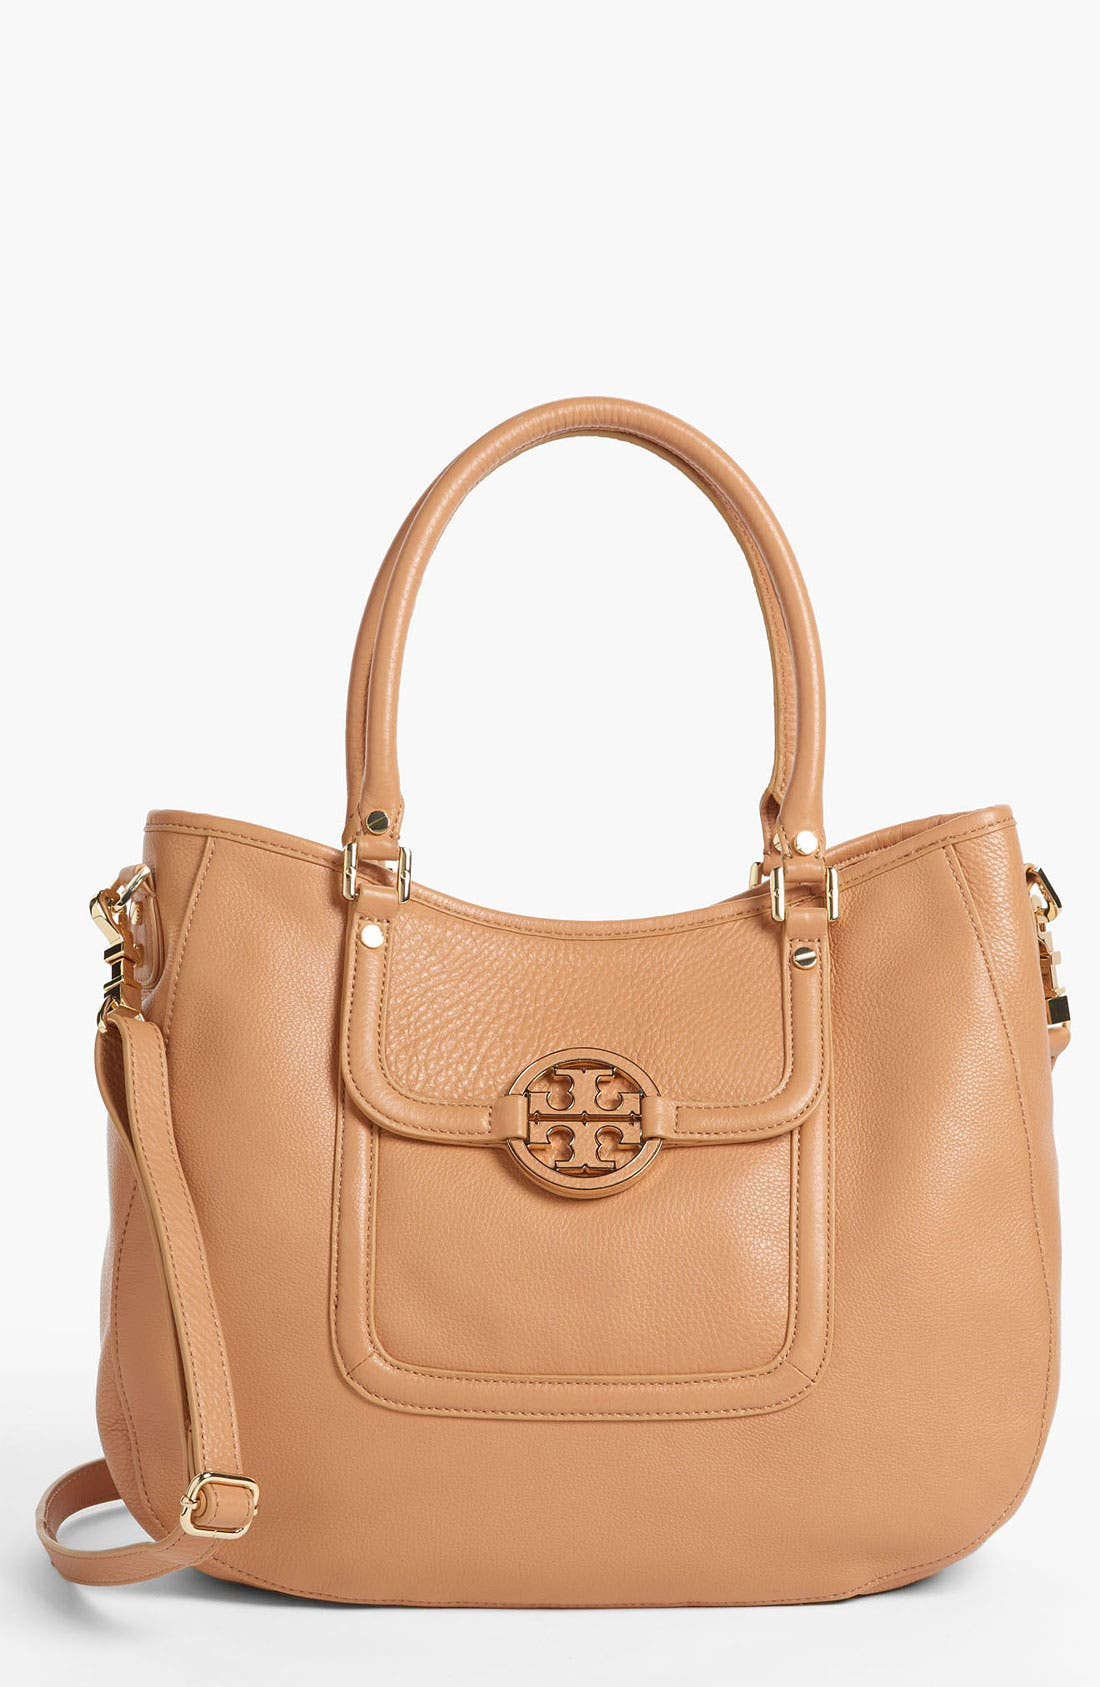 Alternate Image 1 Selected - Tory Burch 'Amanda - Angelux' Leather Hobo